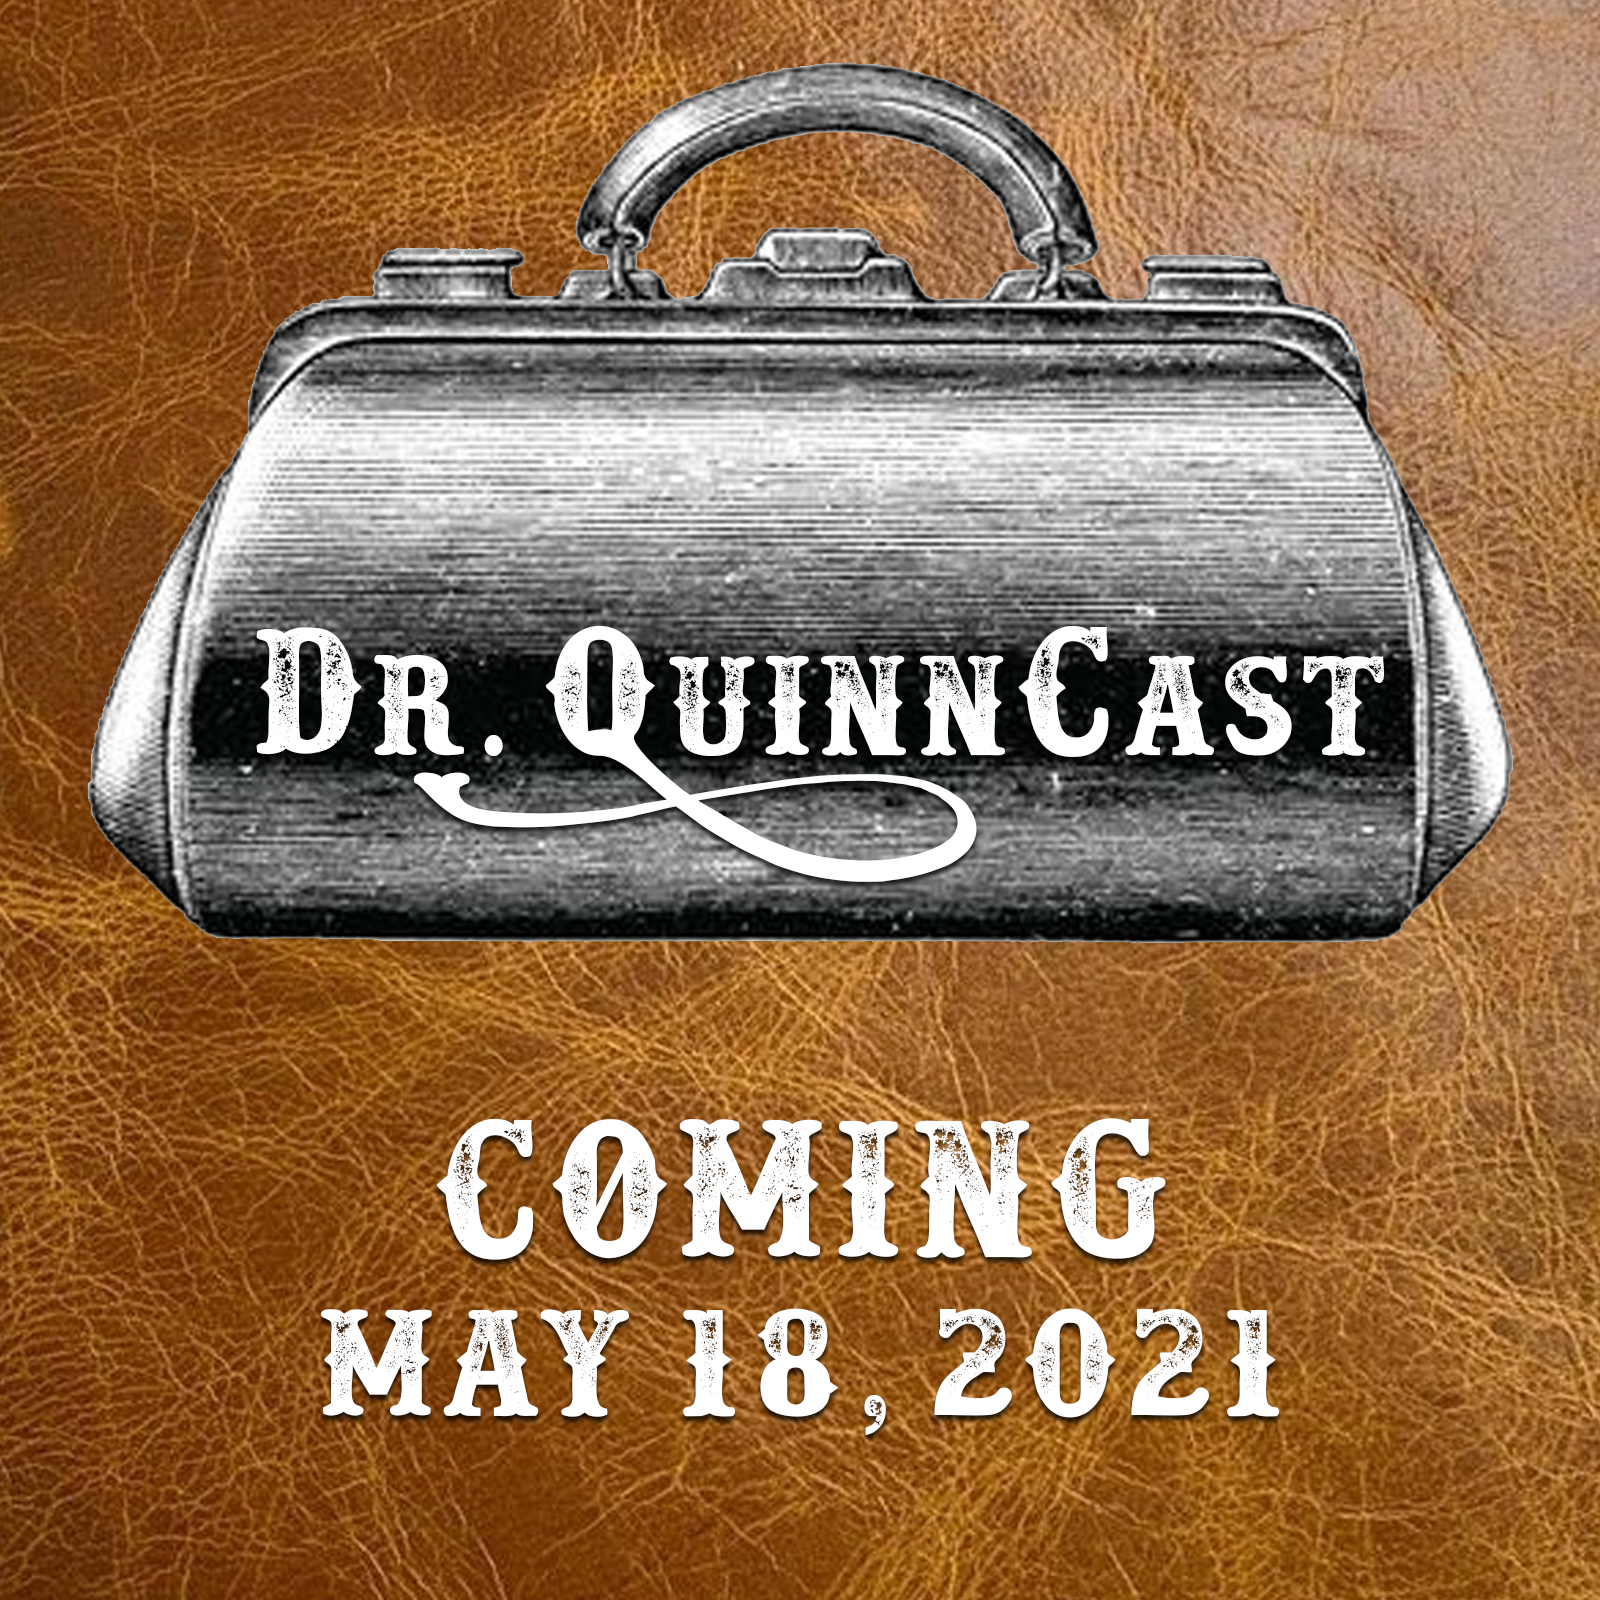 dr. quinncast coming soon logo